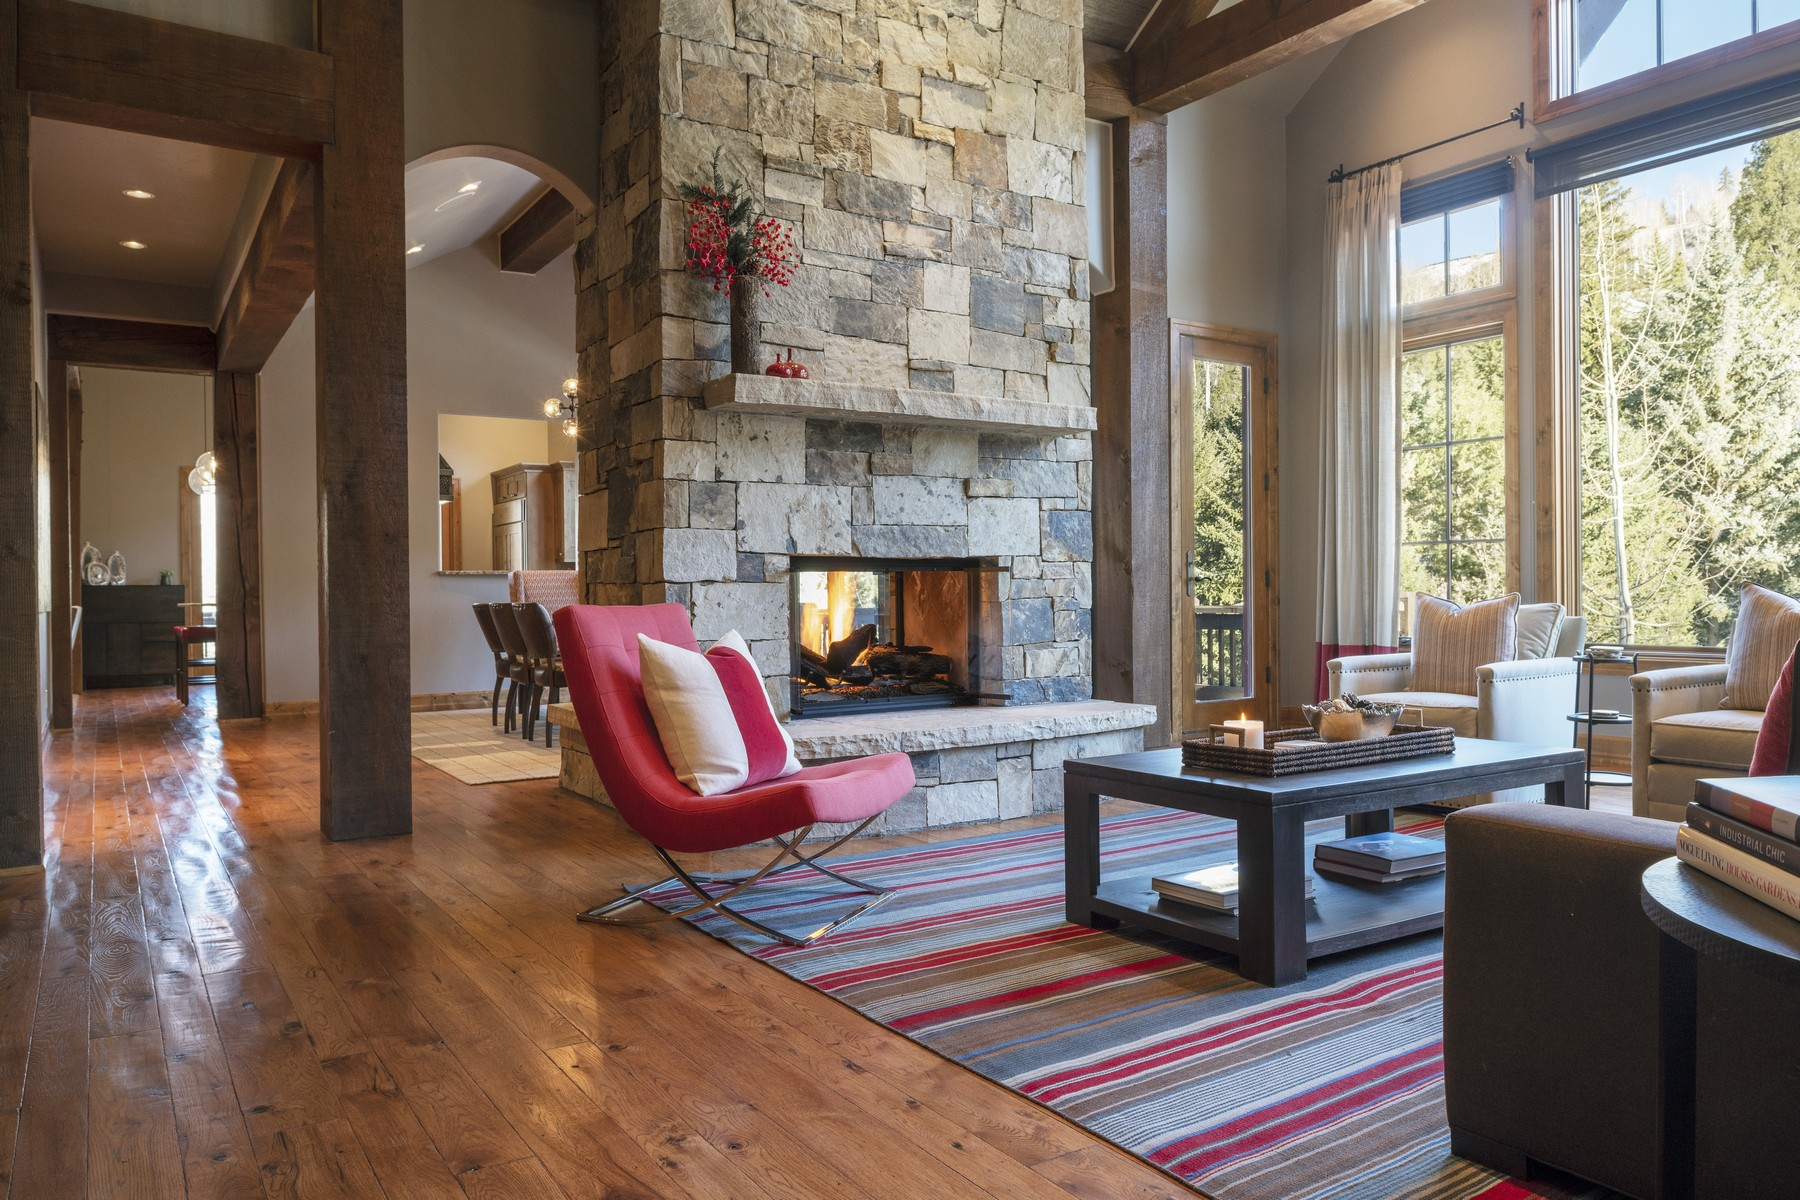 Property for Active at Beautifully appointed 7,300+ residence with private ski cabin 48 McCoy Springs Court Edwards, Colorado 81632 United States